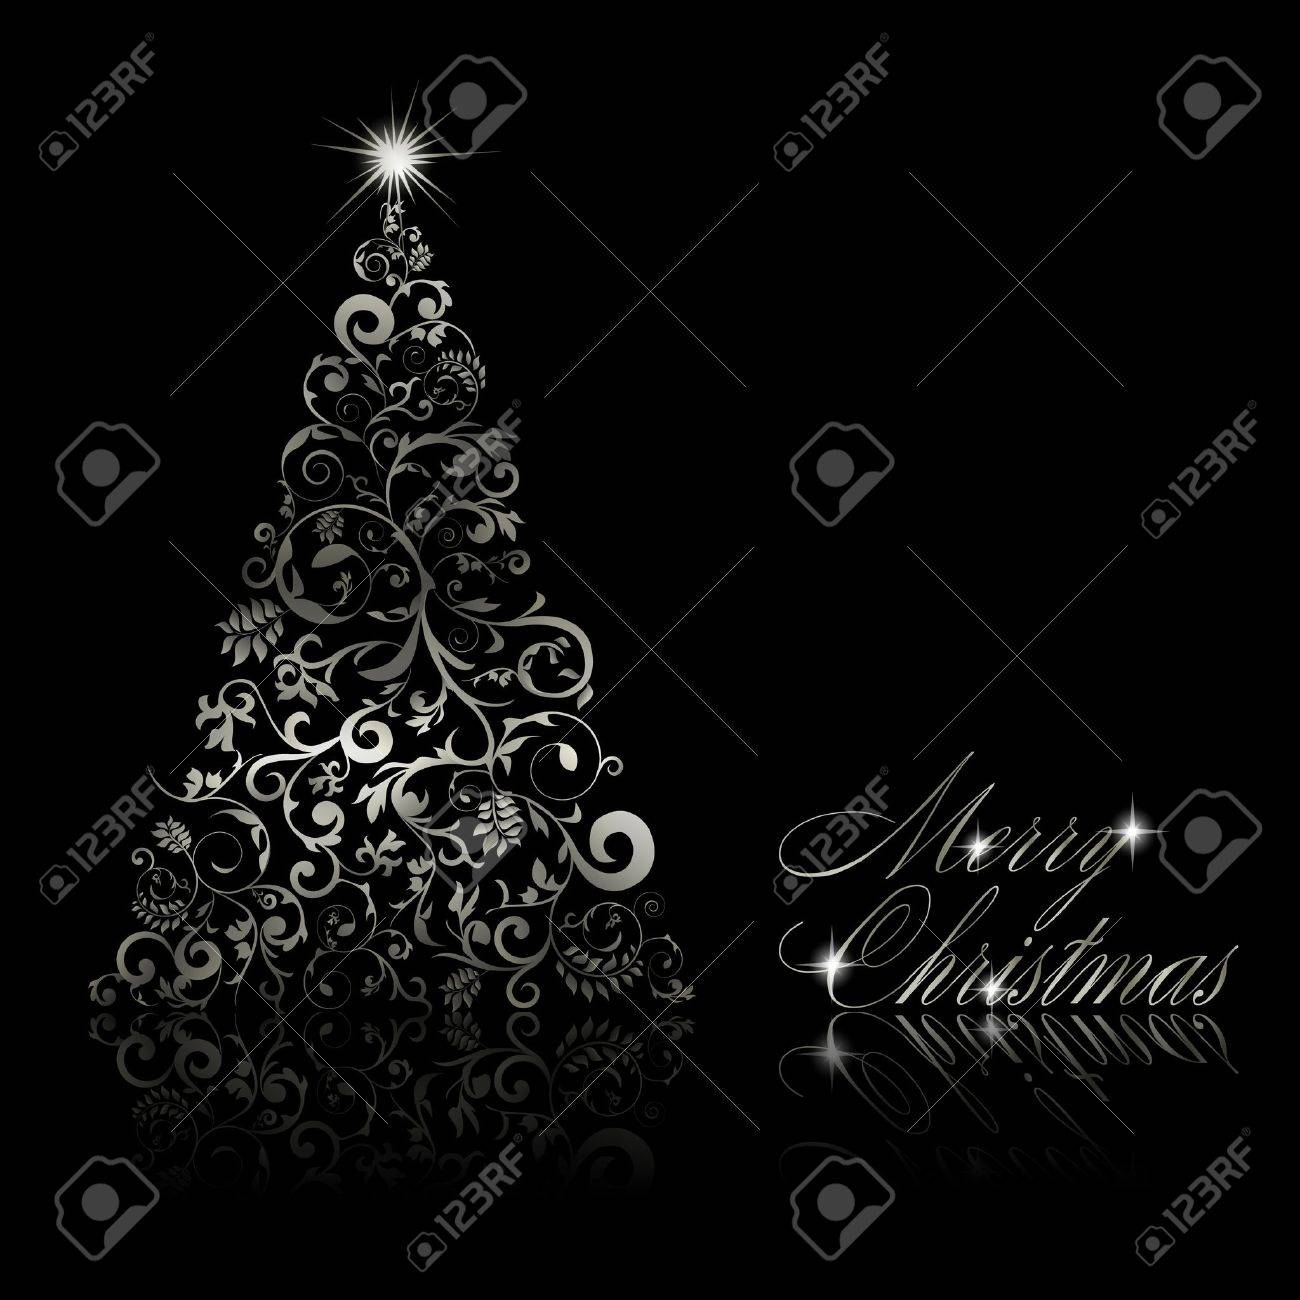 Christmas tree with swirls and floral elements on black background illustration Stock Vector - 11091383